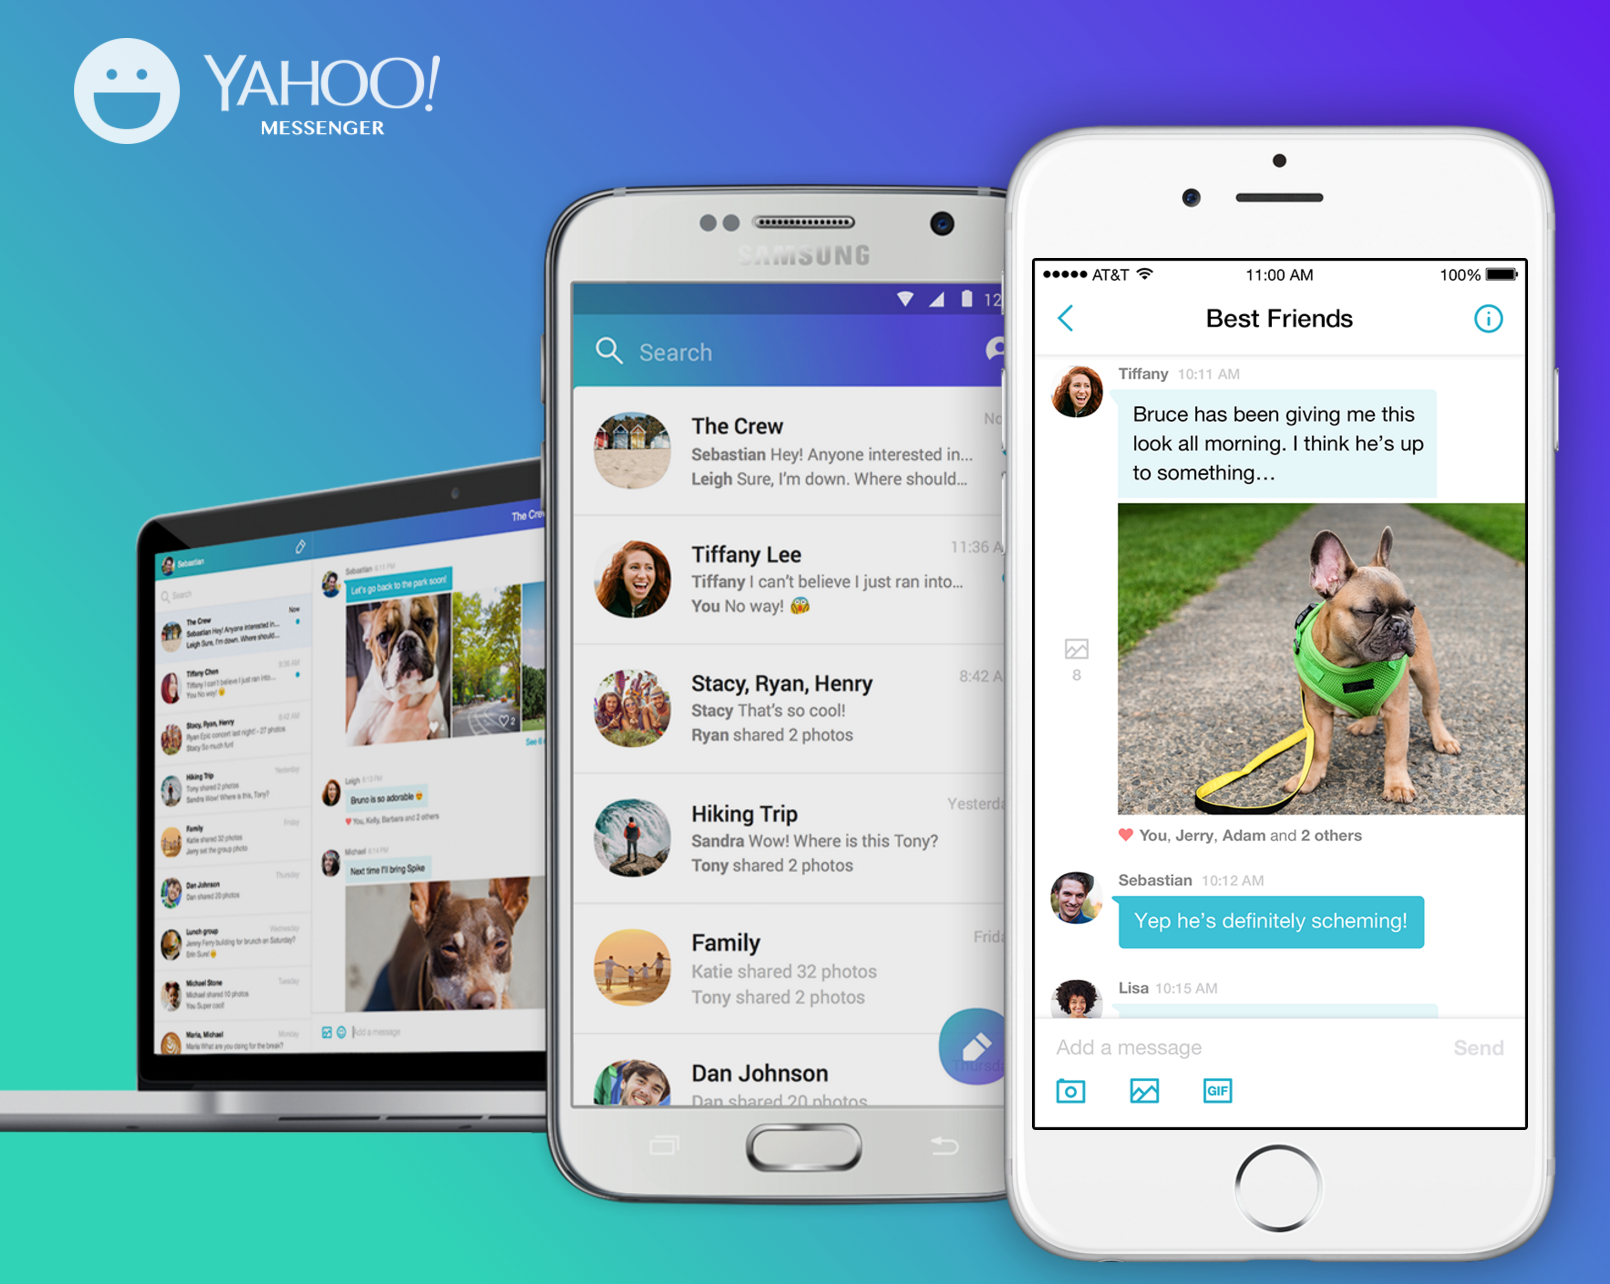 Yahoo Messenger Shuts Down, Directs Users To Group Messaging App 'Squirrel'